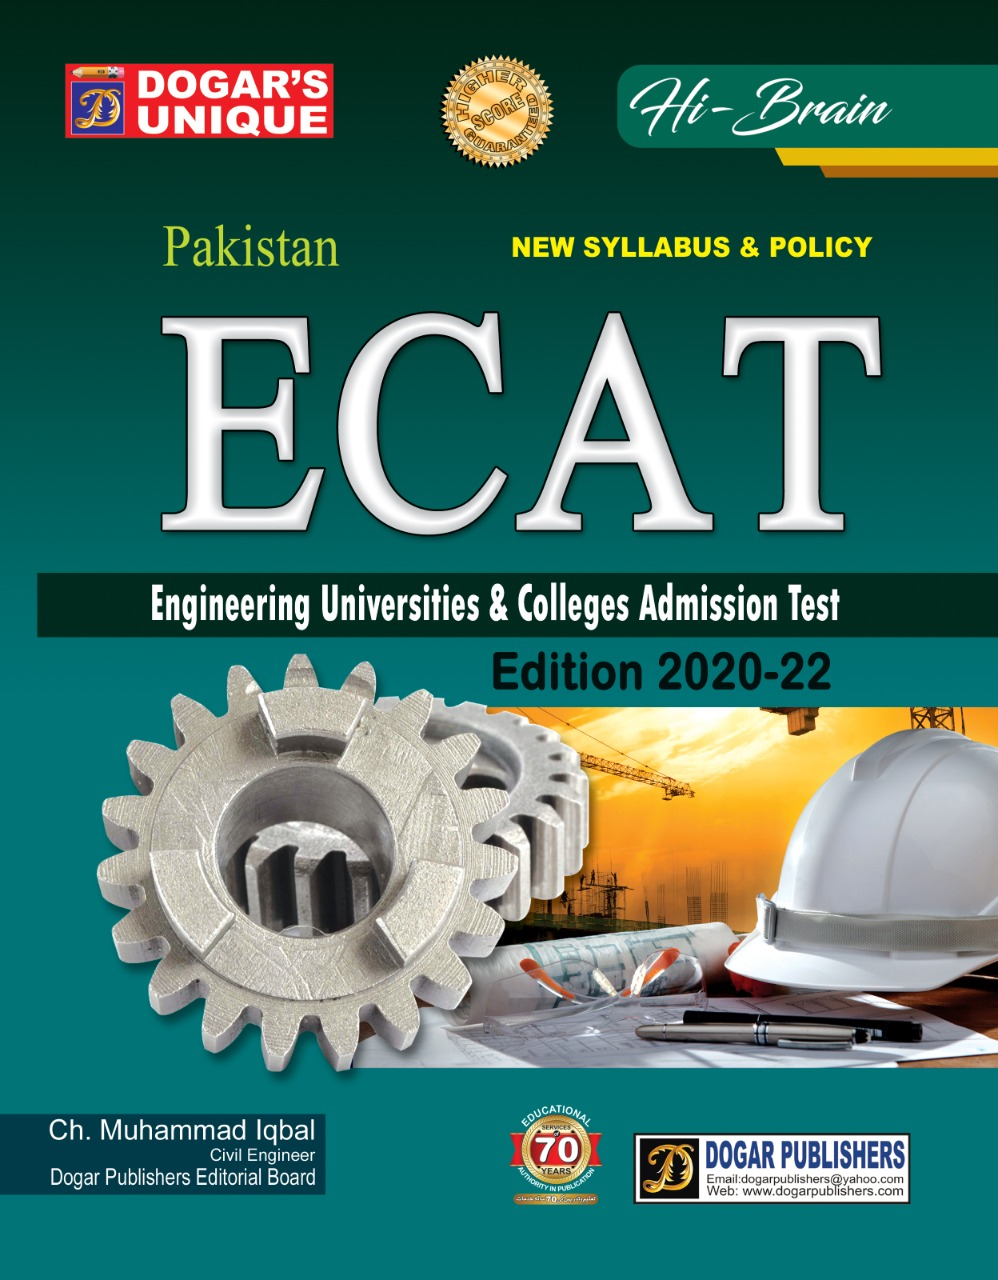 ECAT Engineering universities & College Admission Test